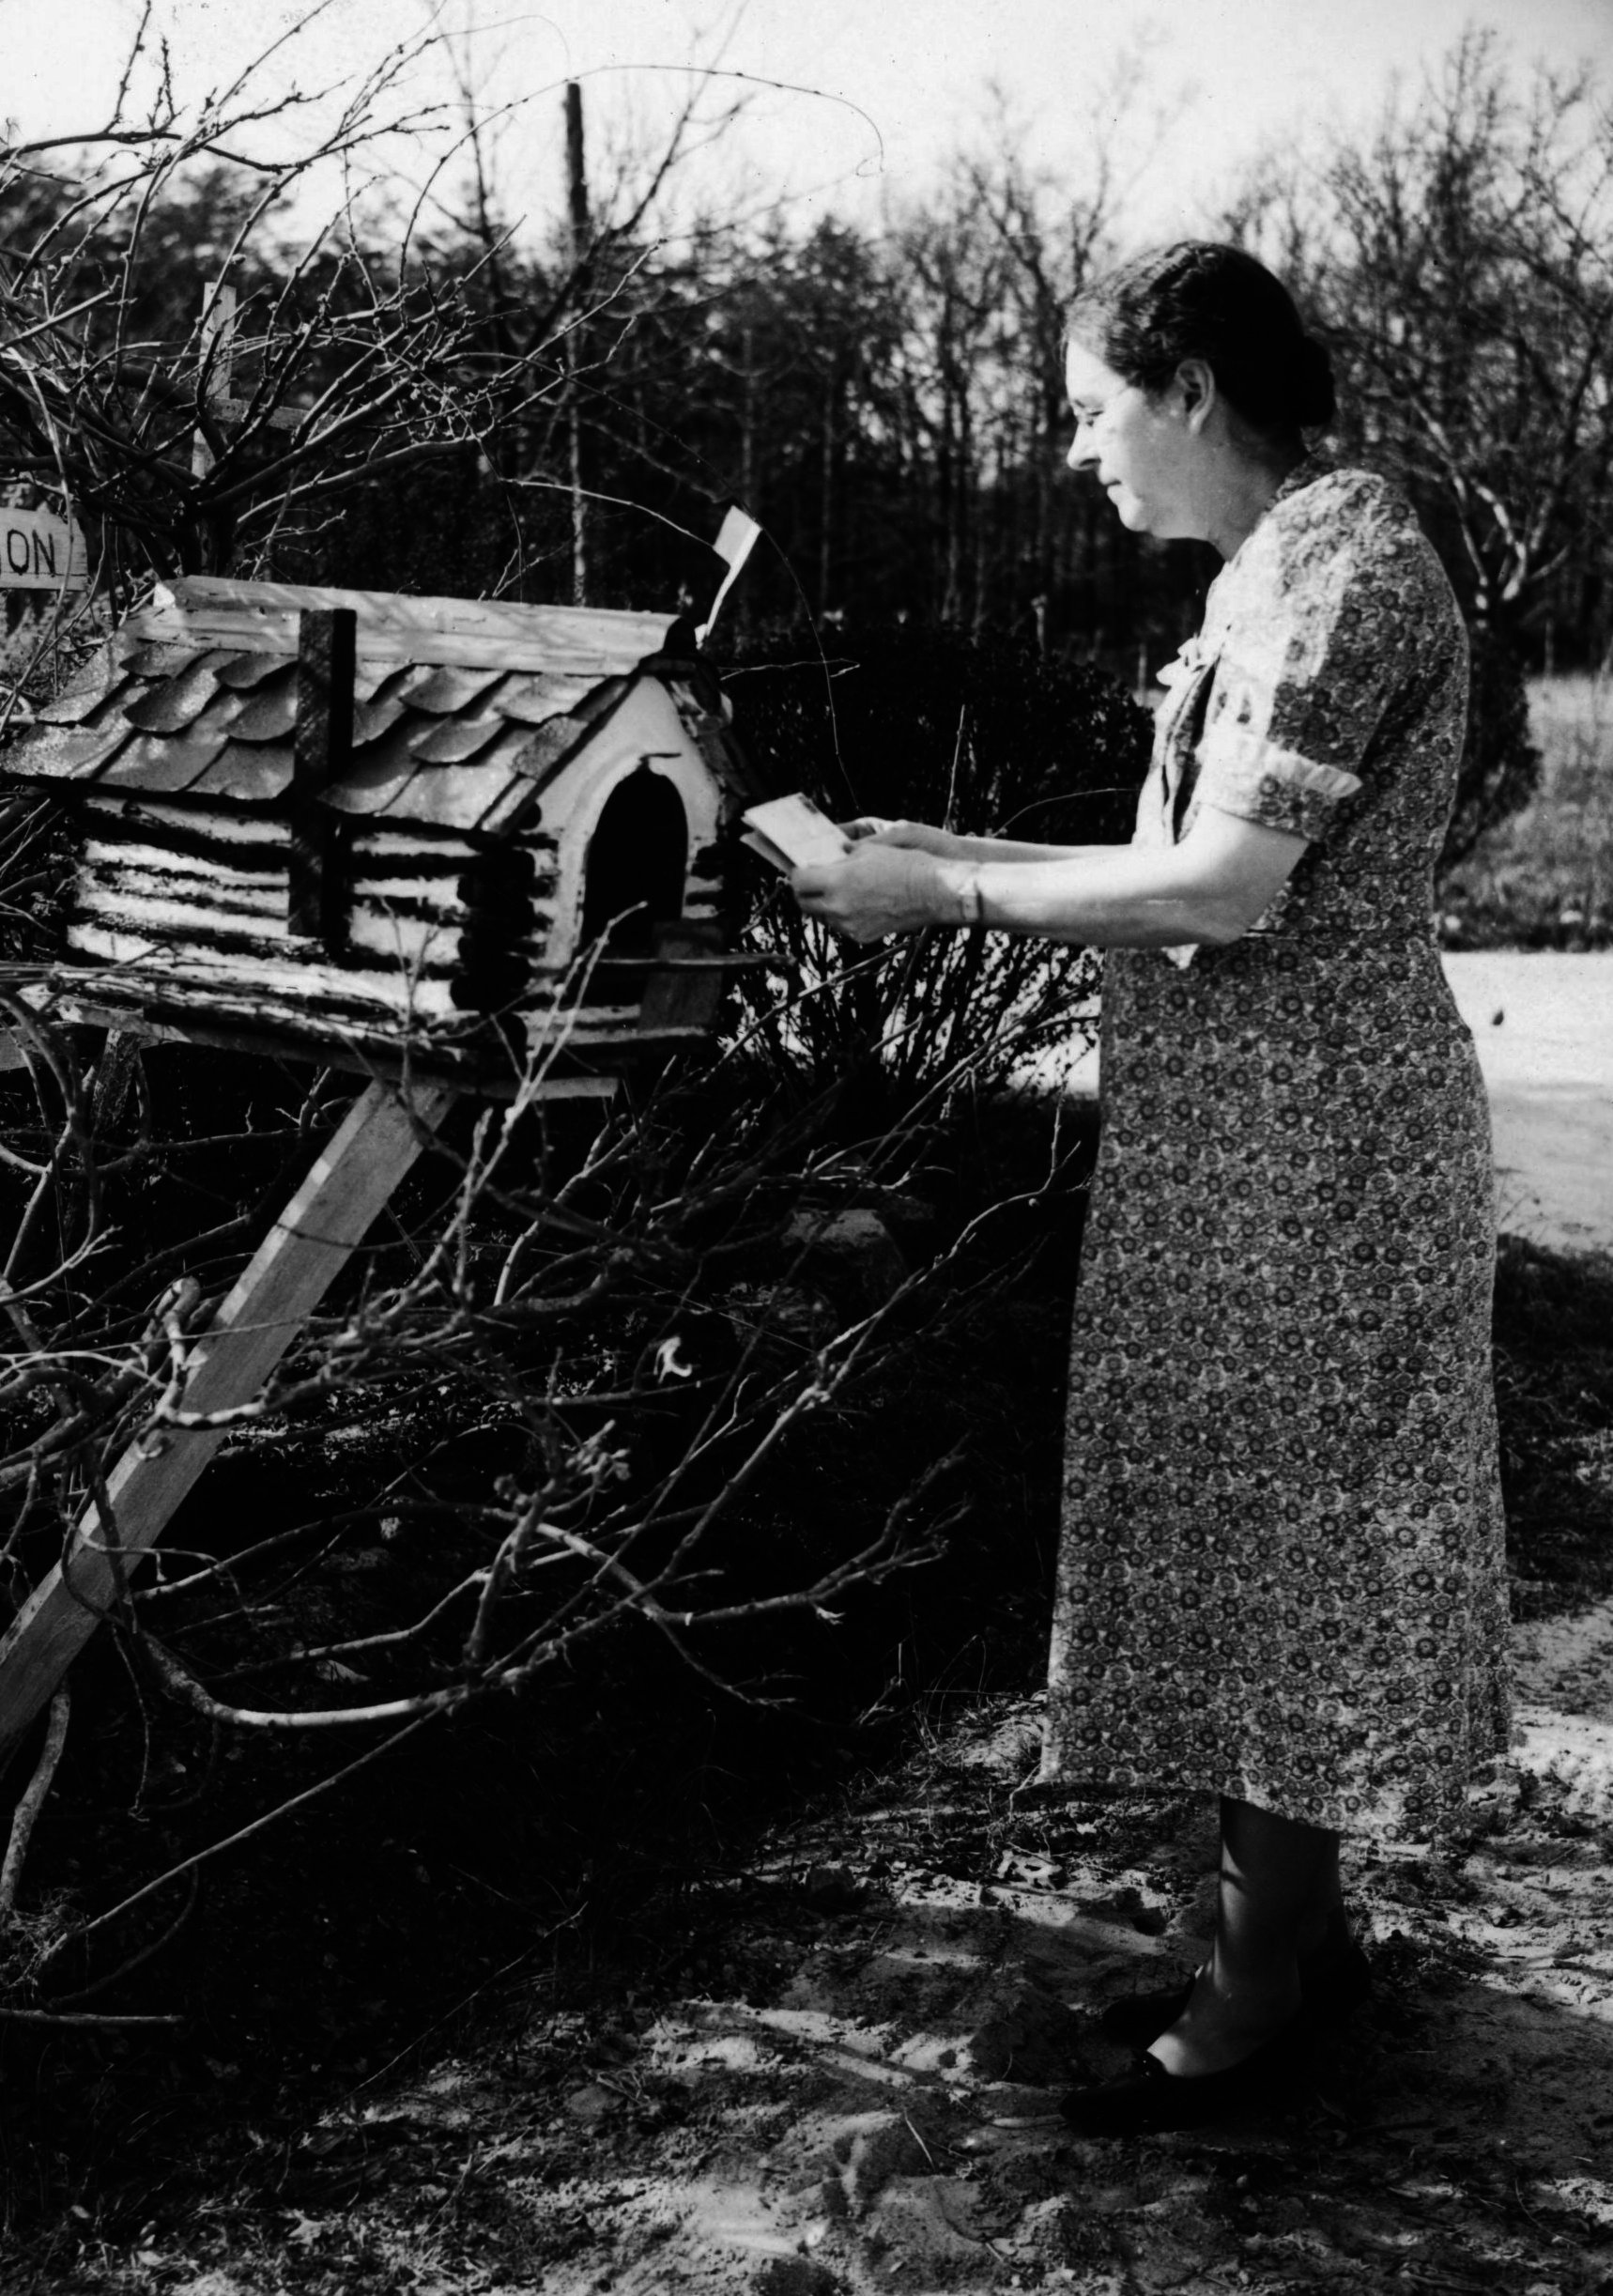 Ruth is checking the letter at her mailbox.